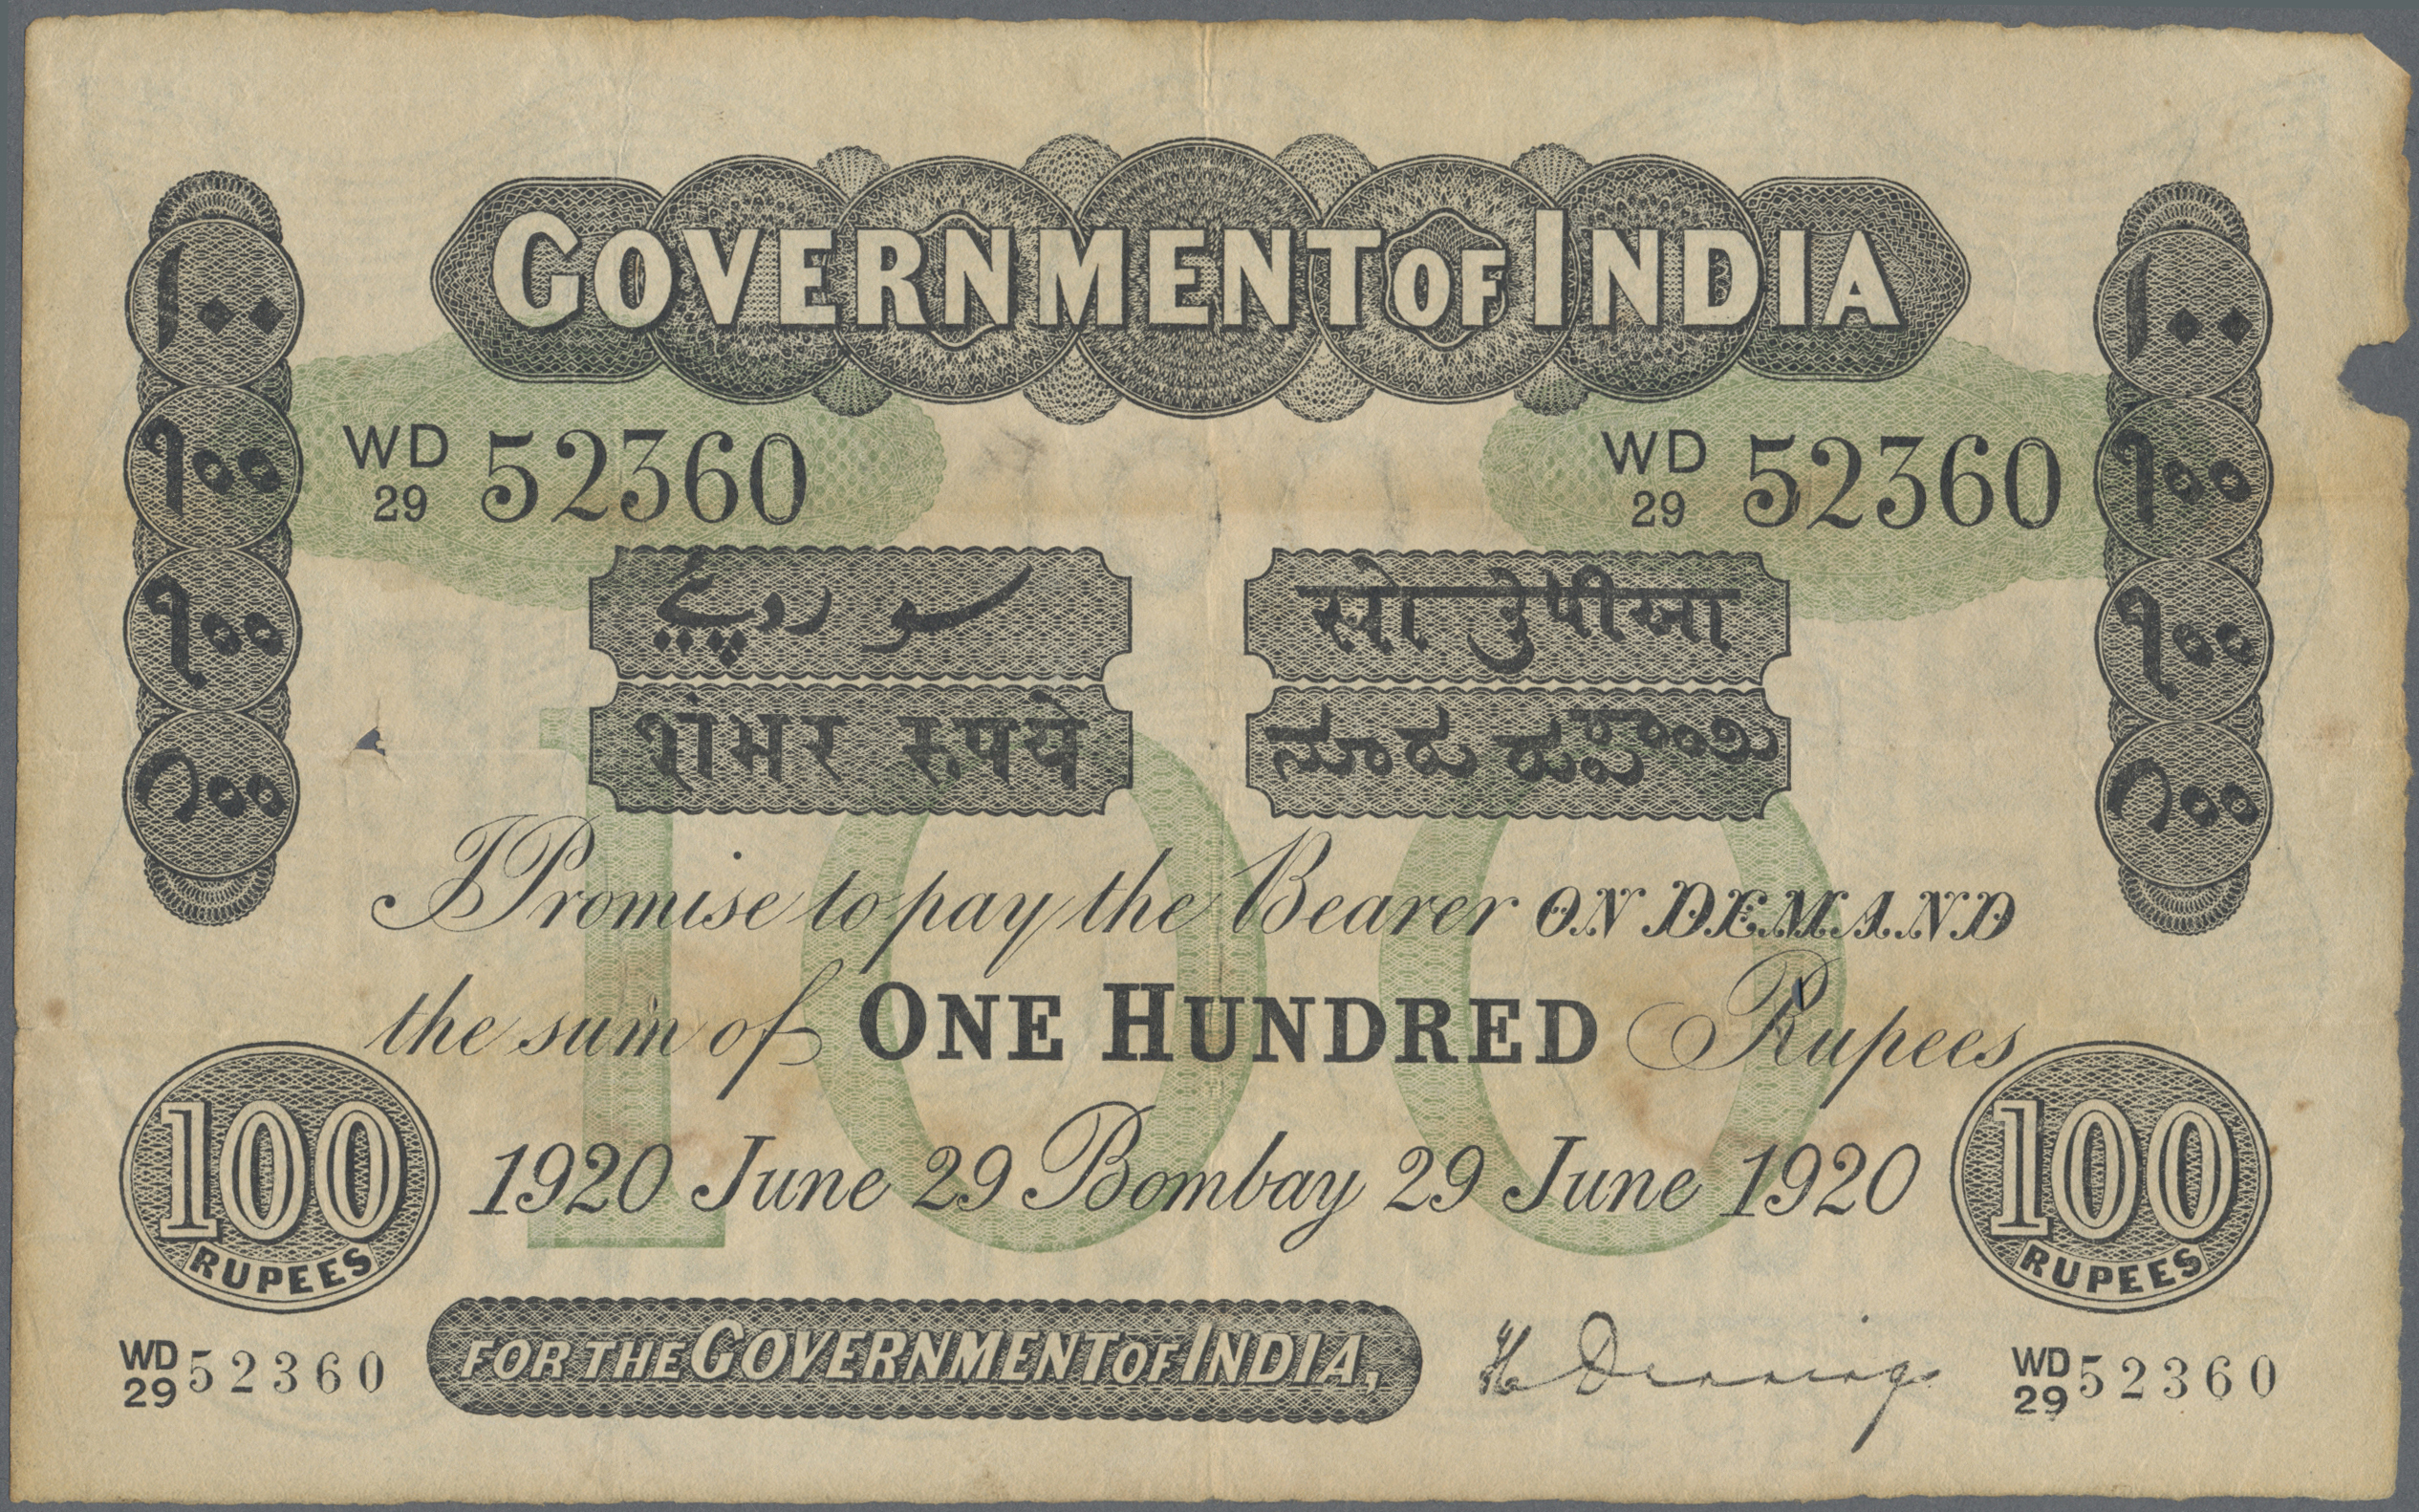 Lot 816 - India / Indien | Banknoten  -  Auktionshaus Christoph Gärtner GmbH & Co. KG Banknotes Worldwide Auction #39 Day 1